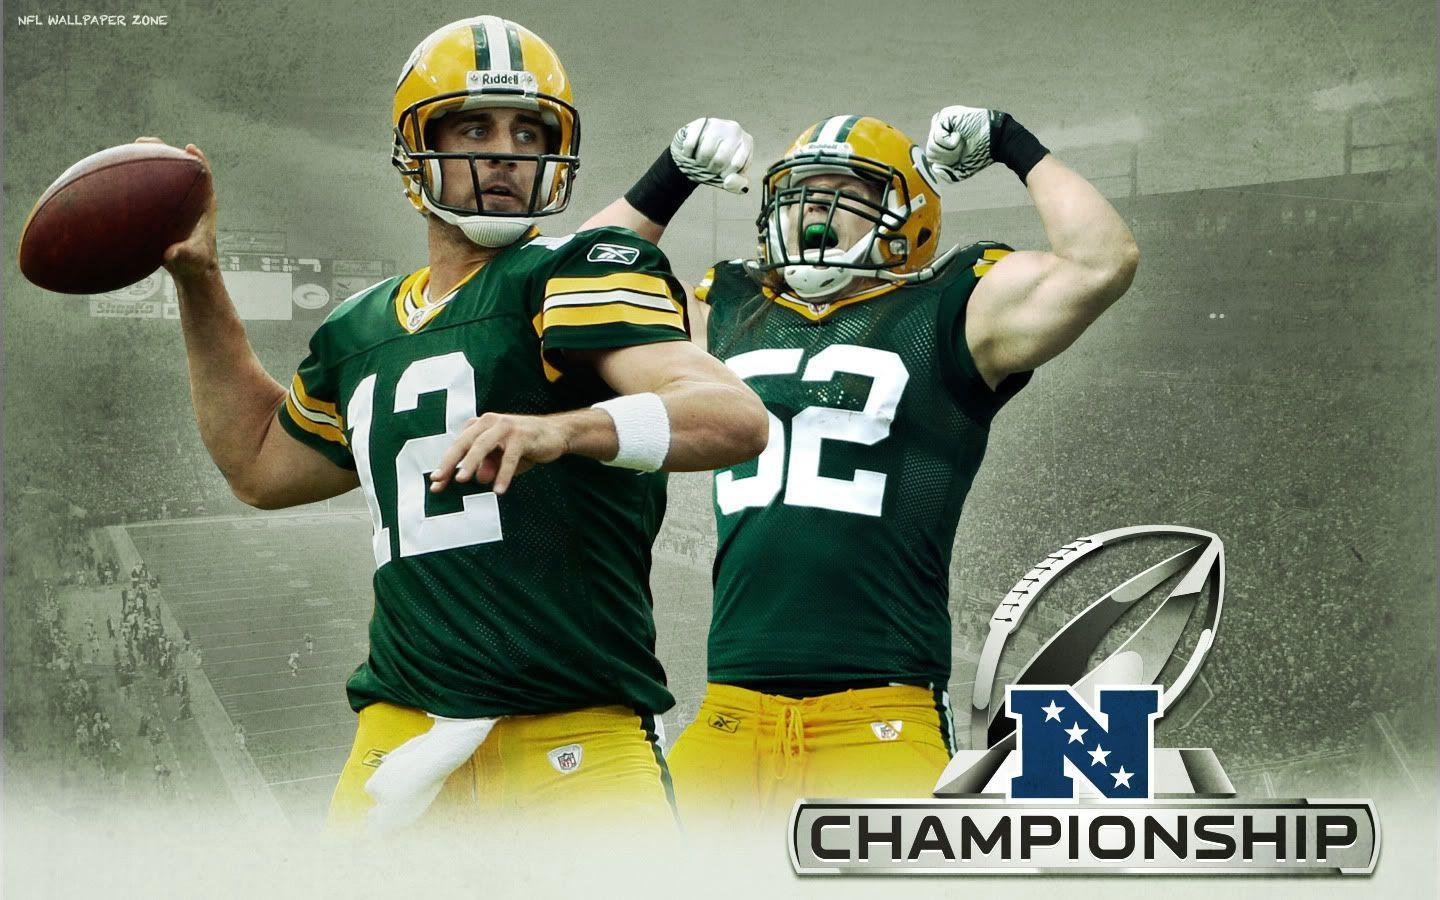 More Green Bay Packers Wallpapers